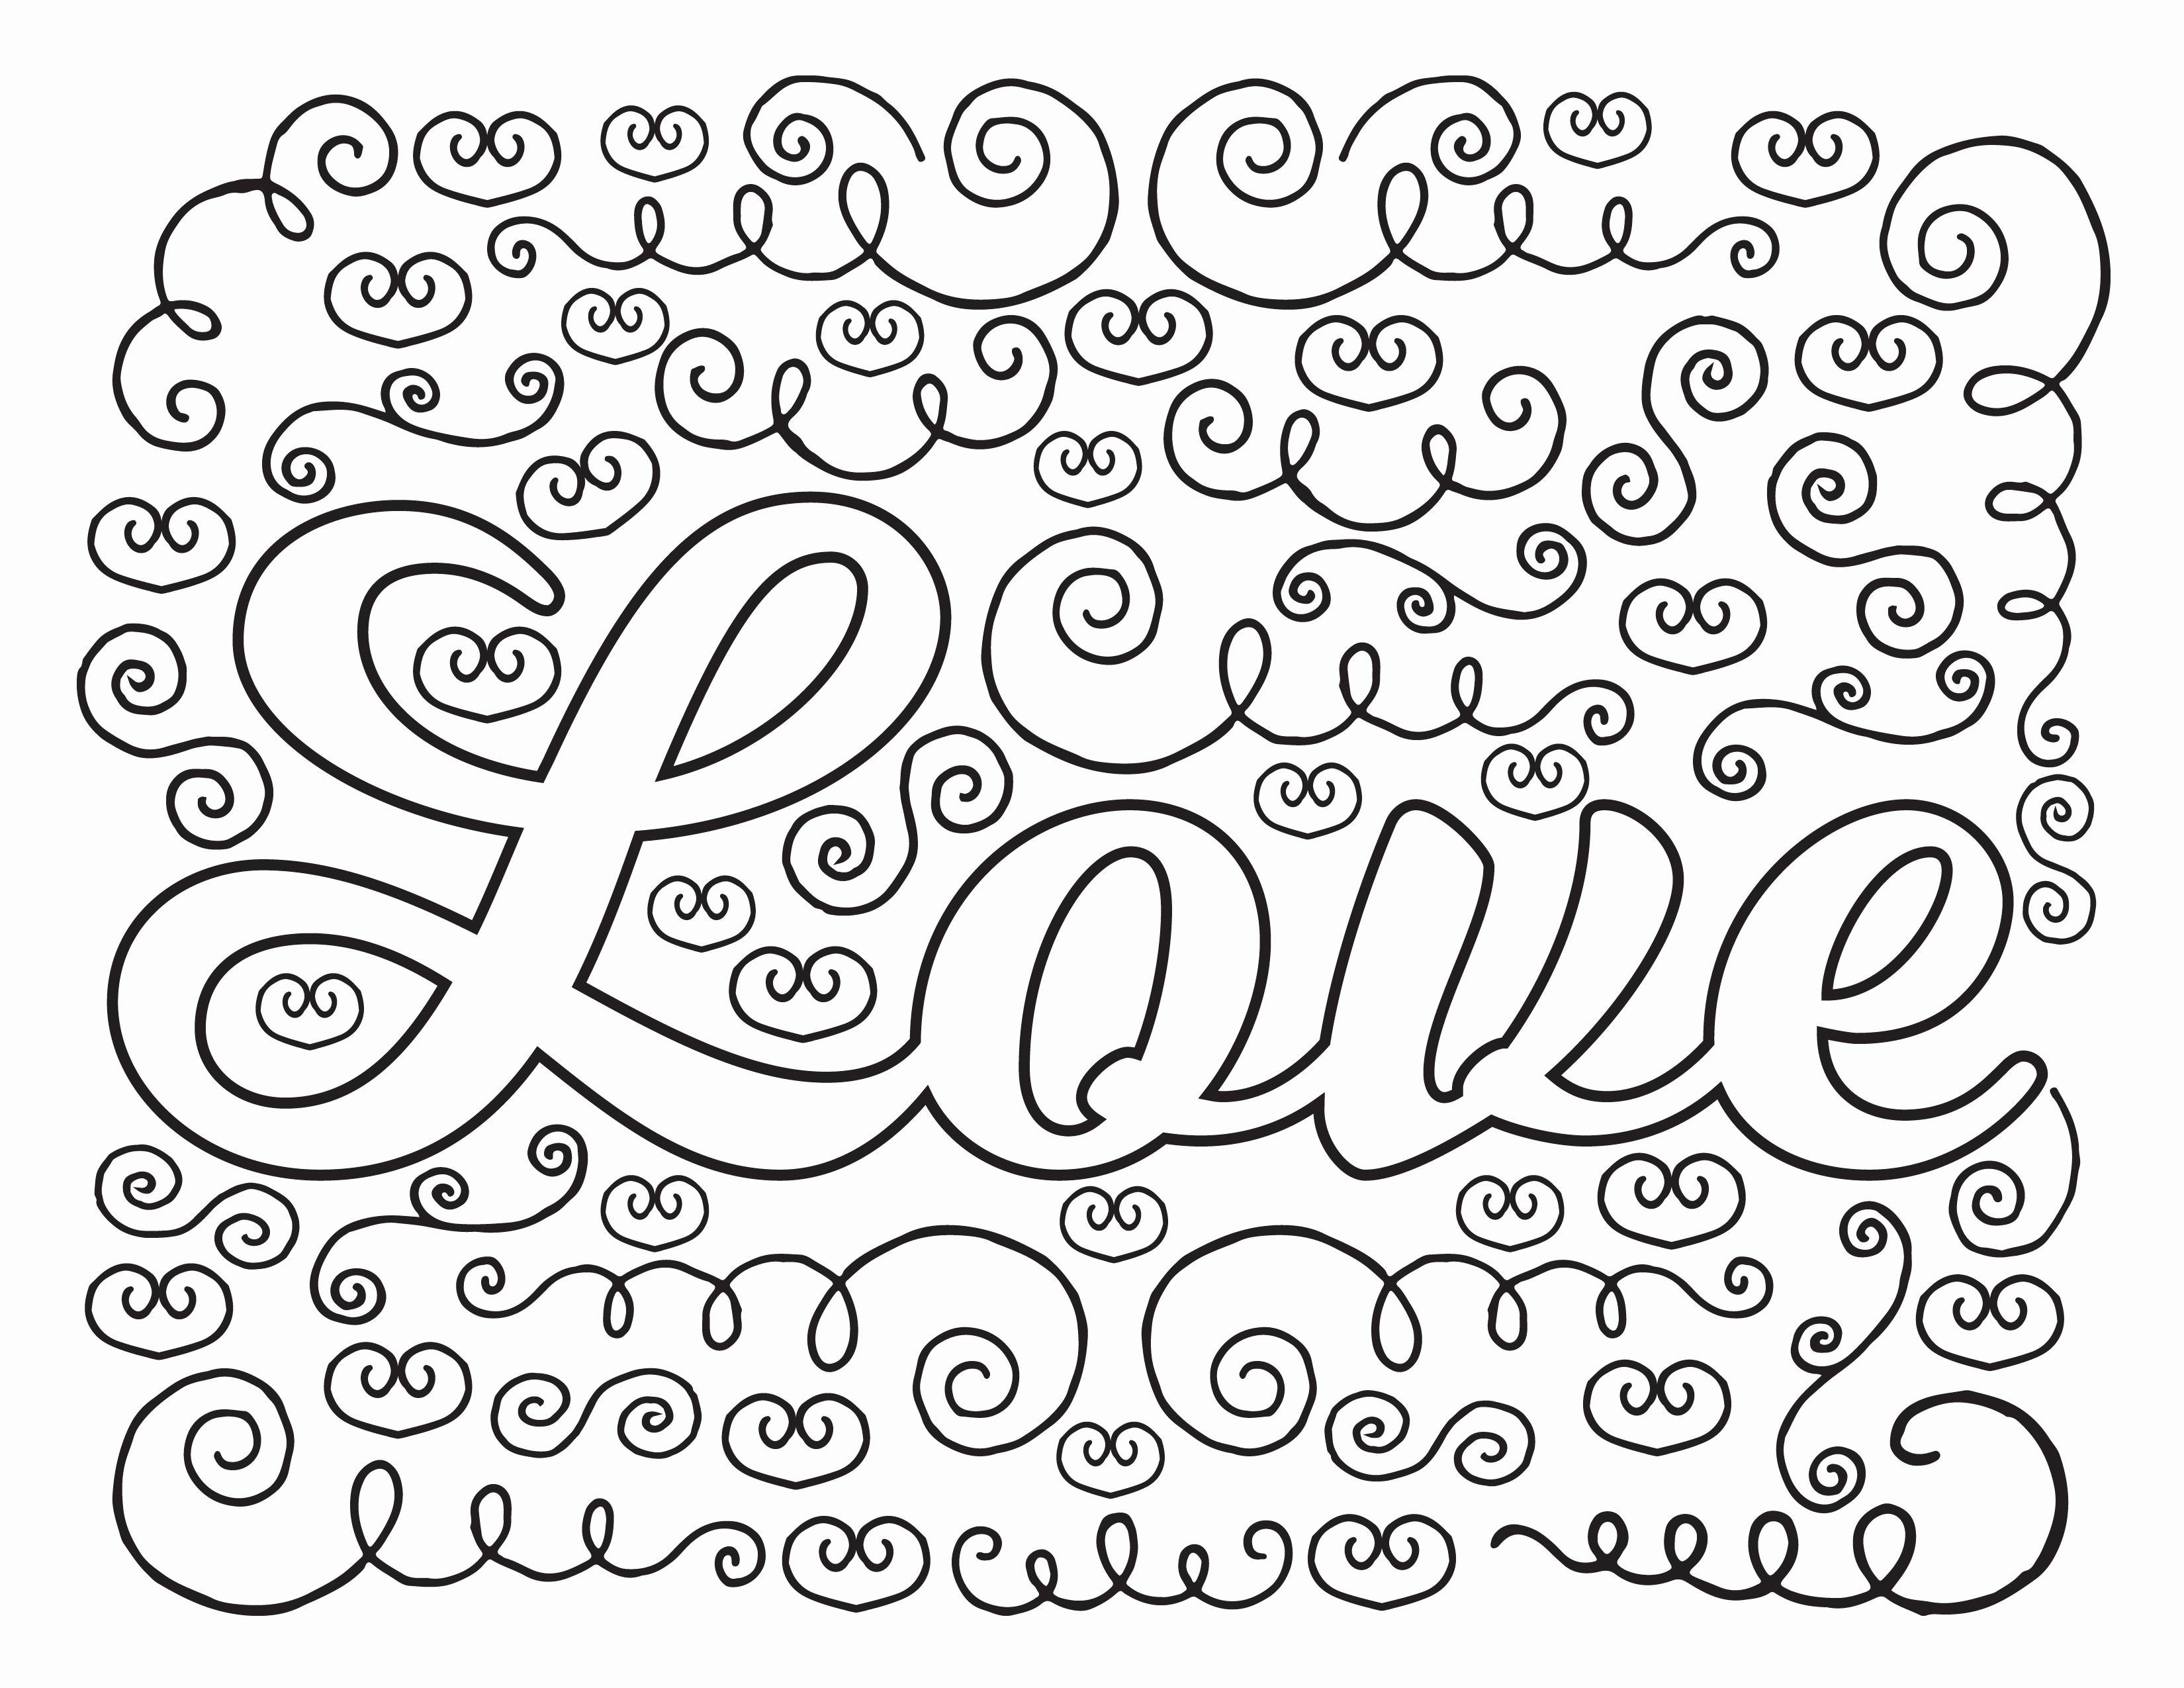 free printable kindergarten coloring pages Download-Lipstick Coloring Pages Free Printable Kids Coloring Pages Beautiful Crayola Pages 0d 11-s